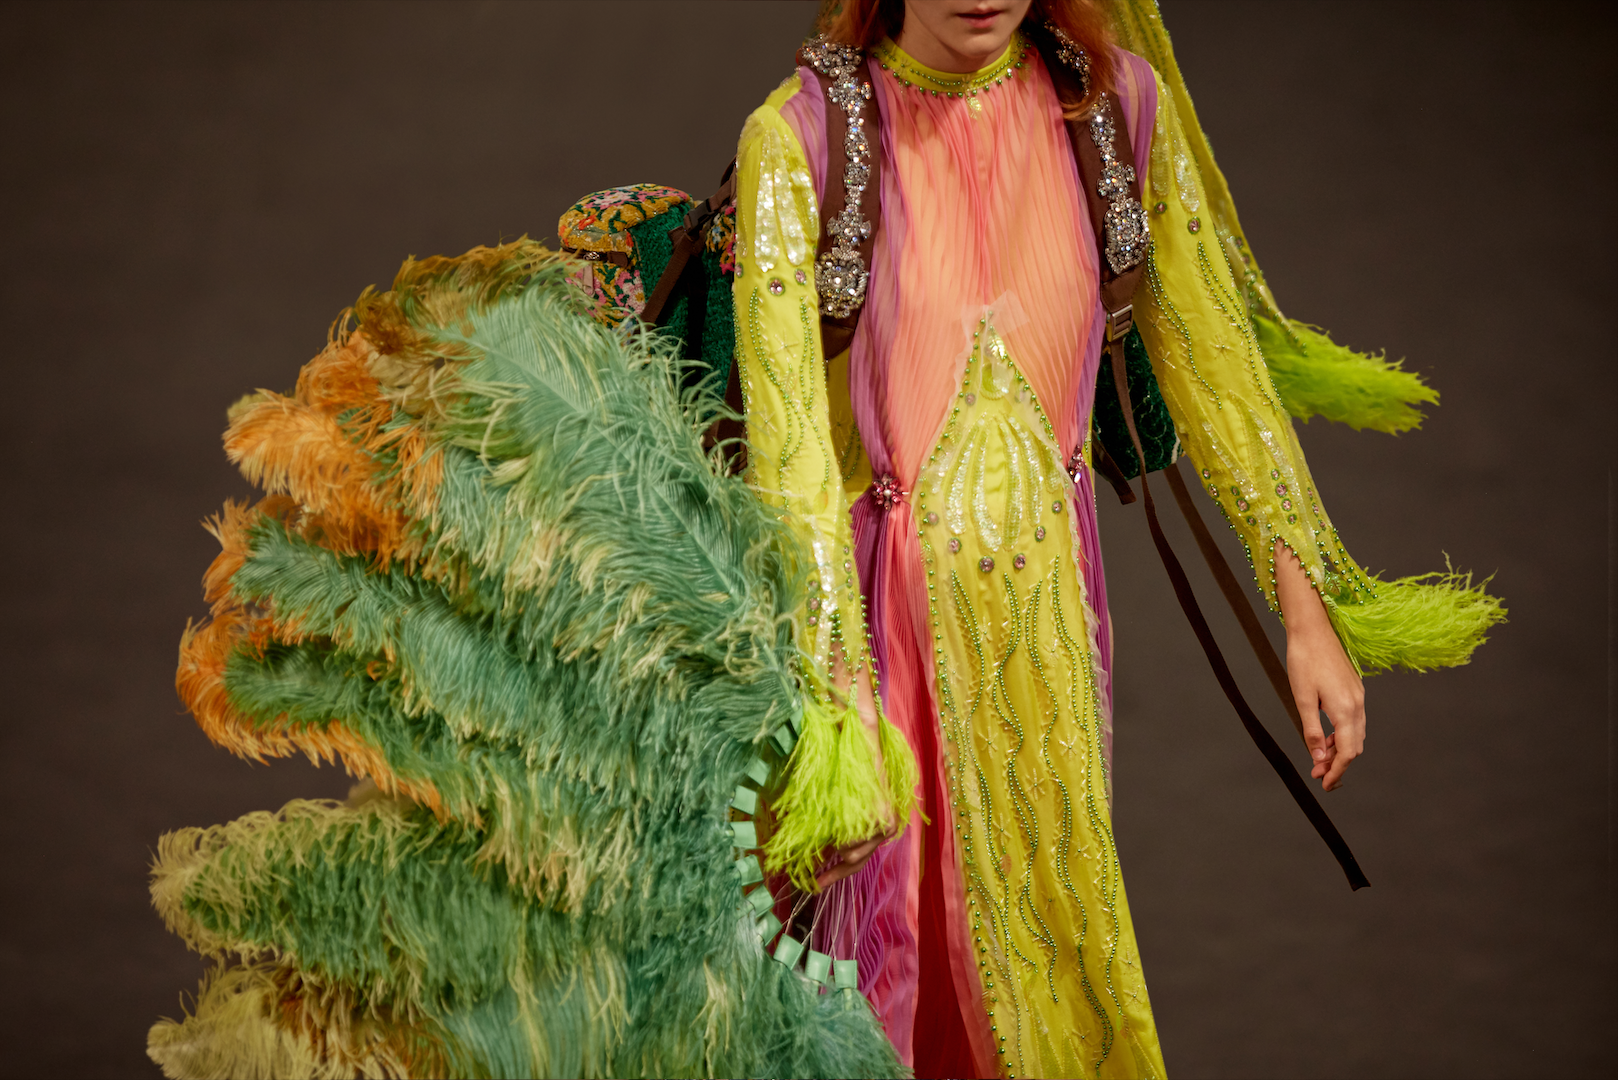 Gucci's Spring/Summer 2019 Collection